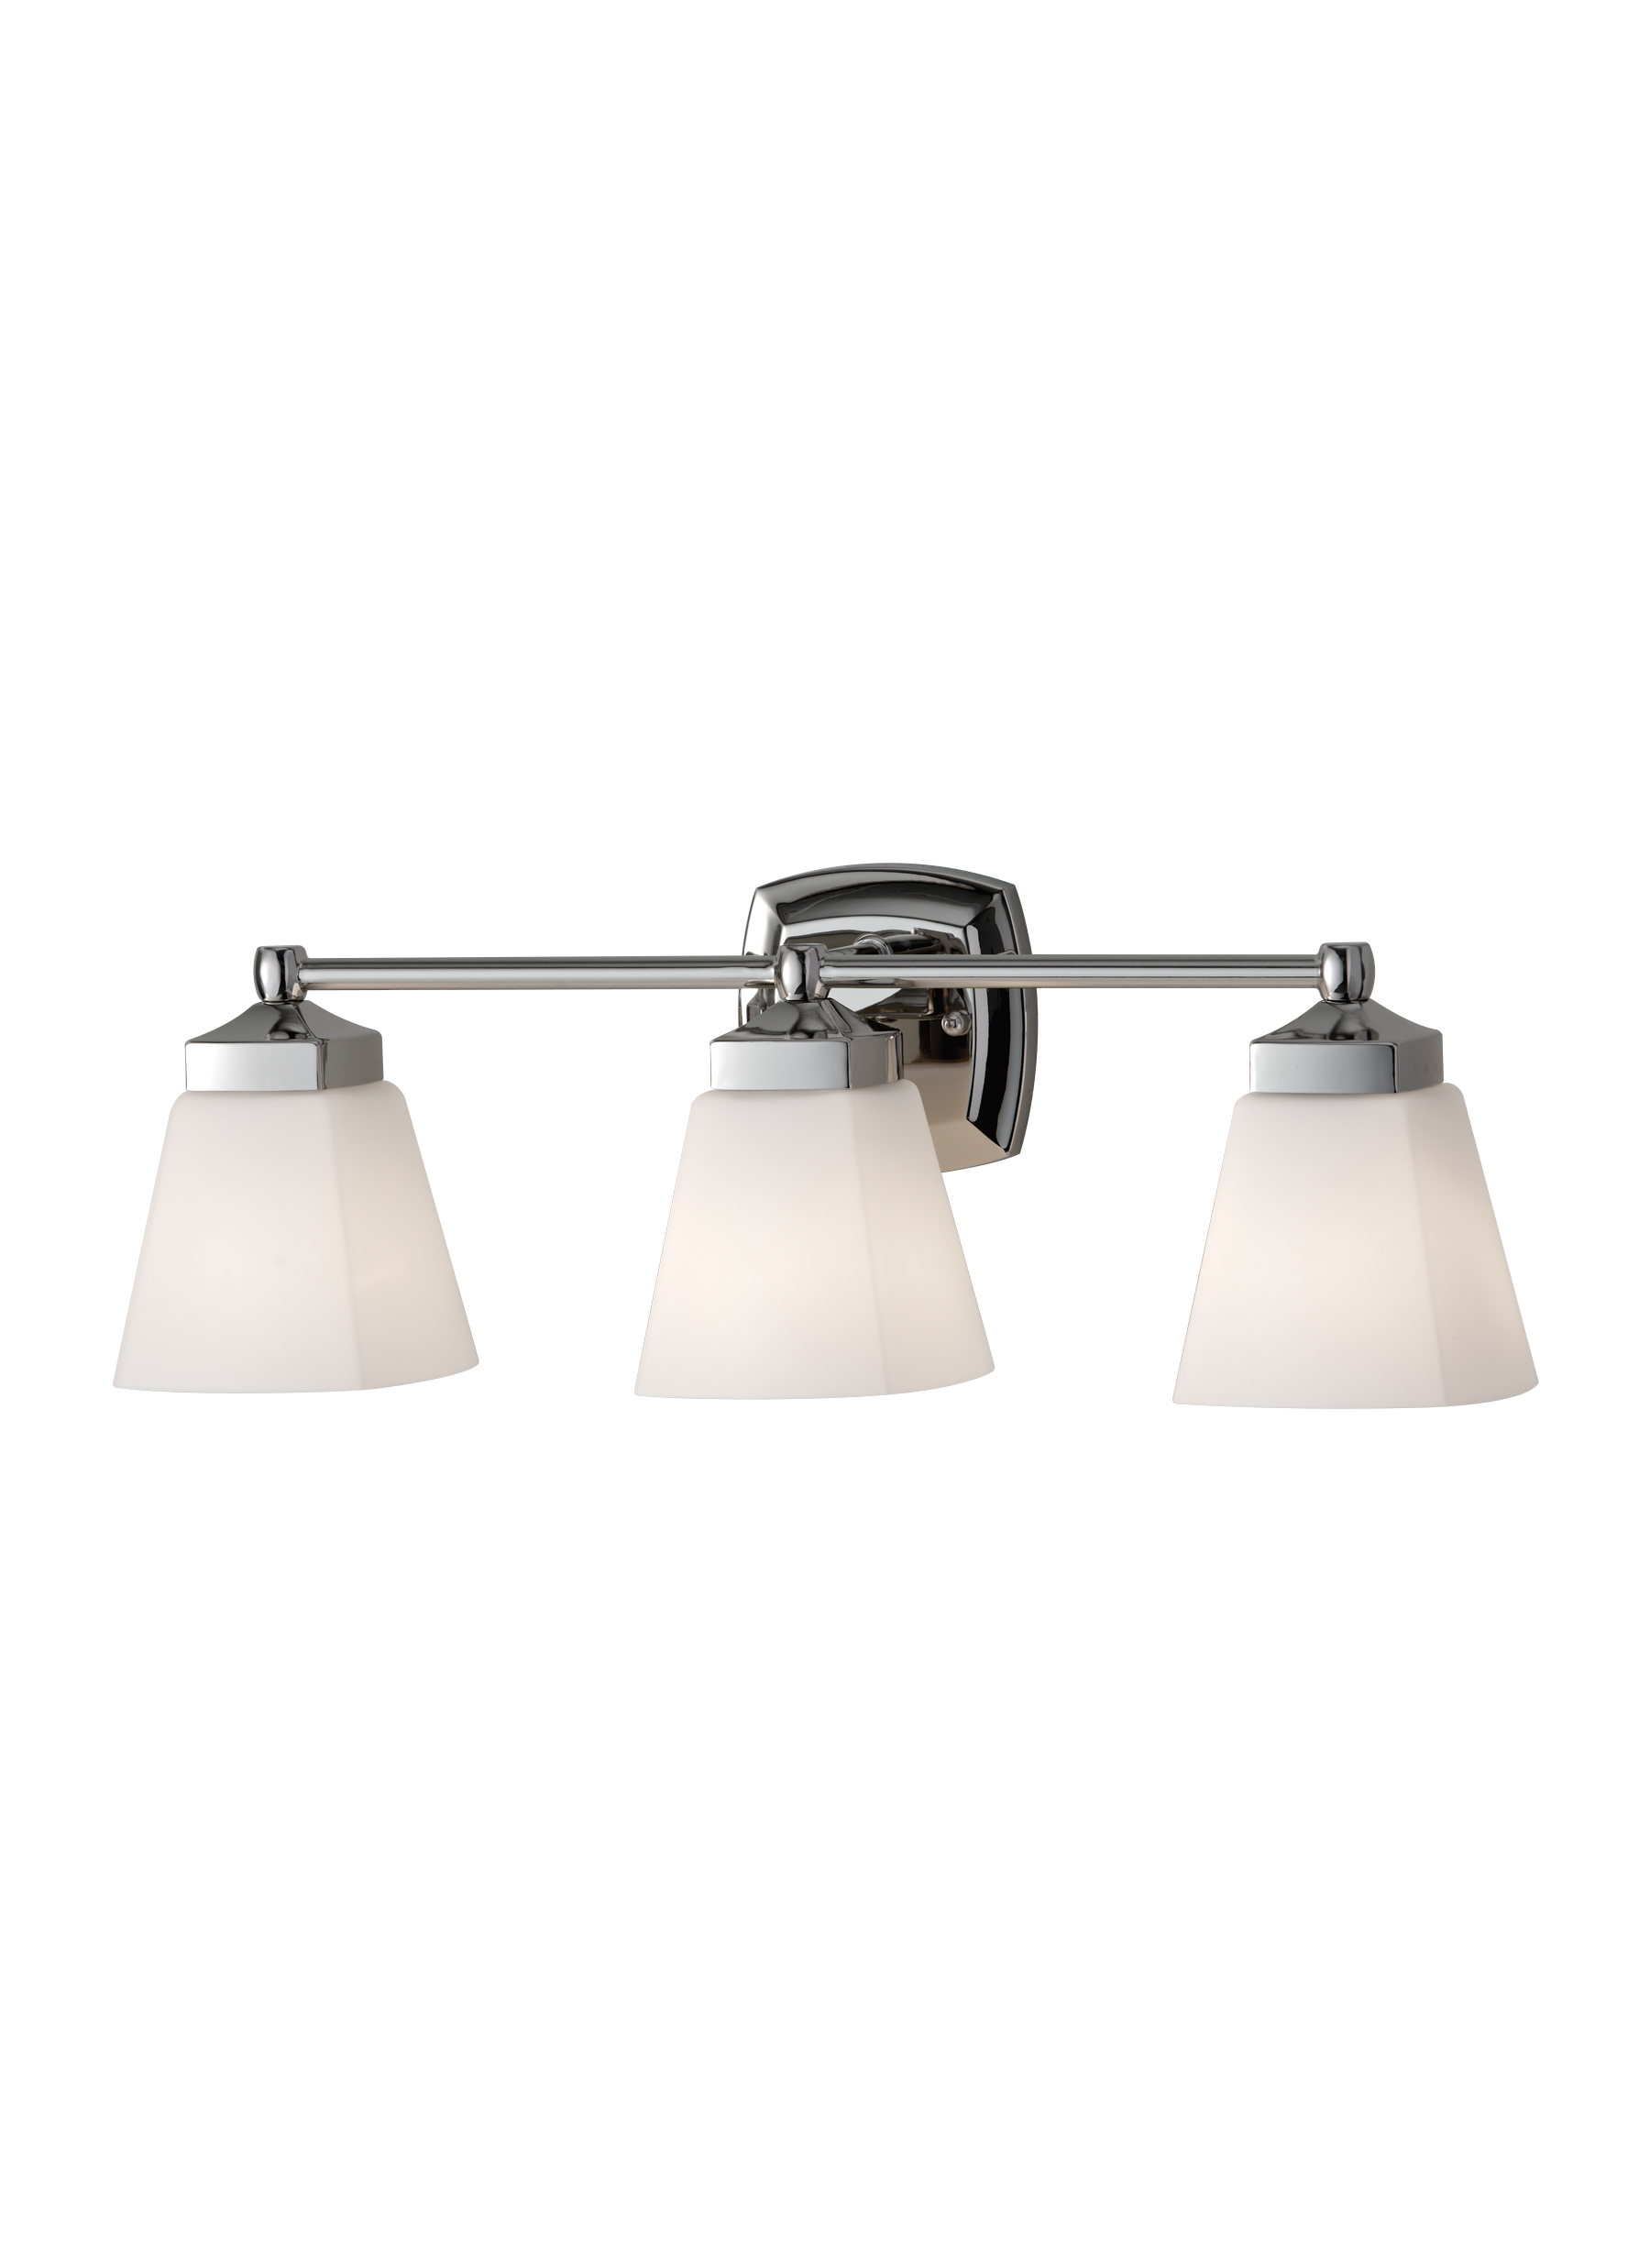 VS19903-PN,3-Light Vanity Strip,Polished Nickel